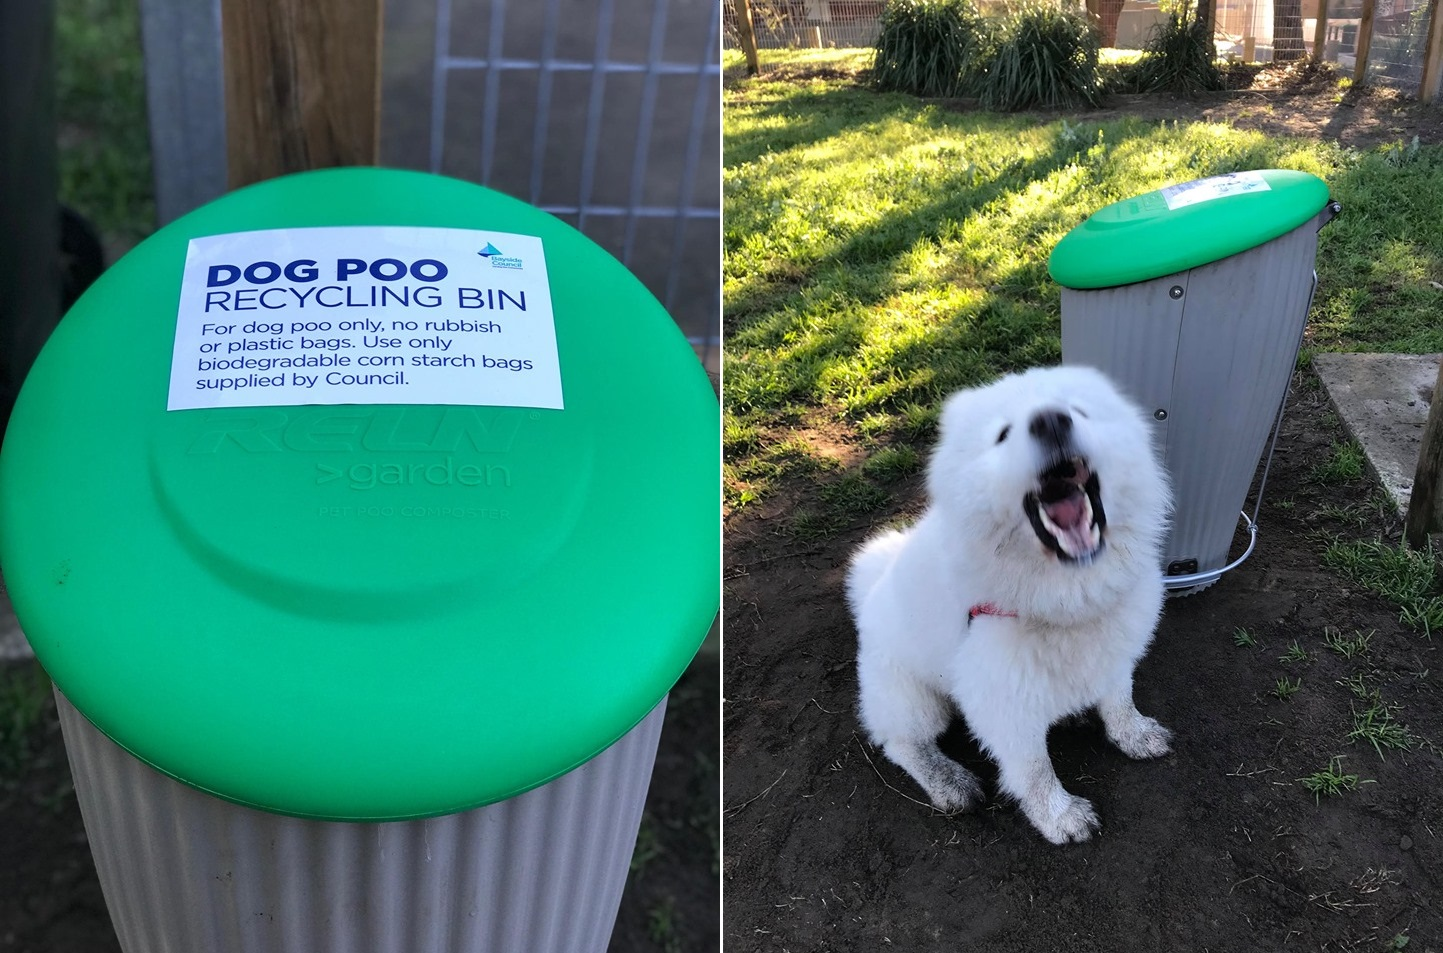 Dog Poo Recycling Bins